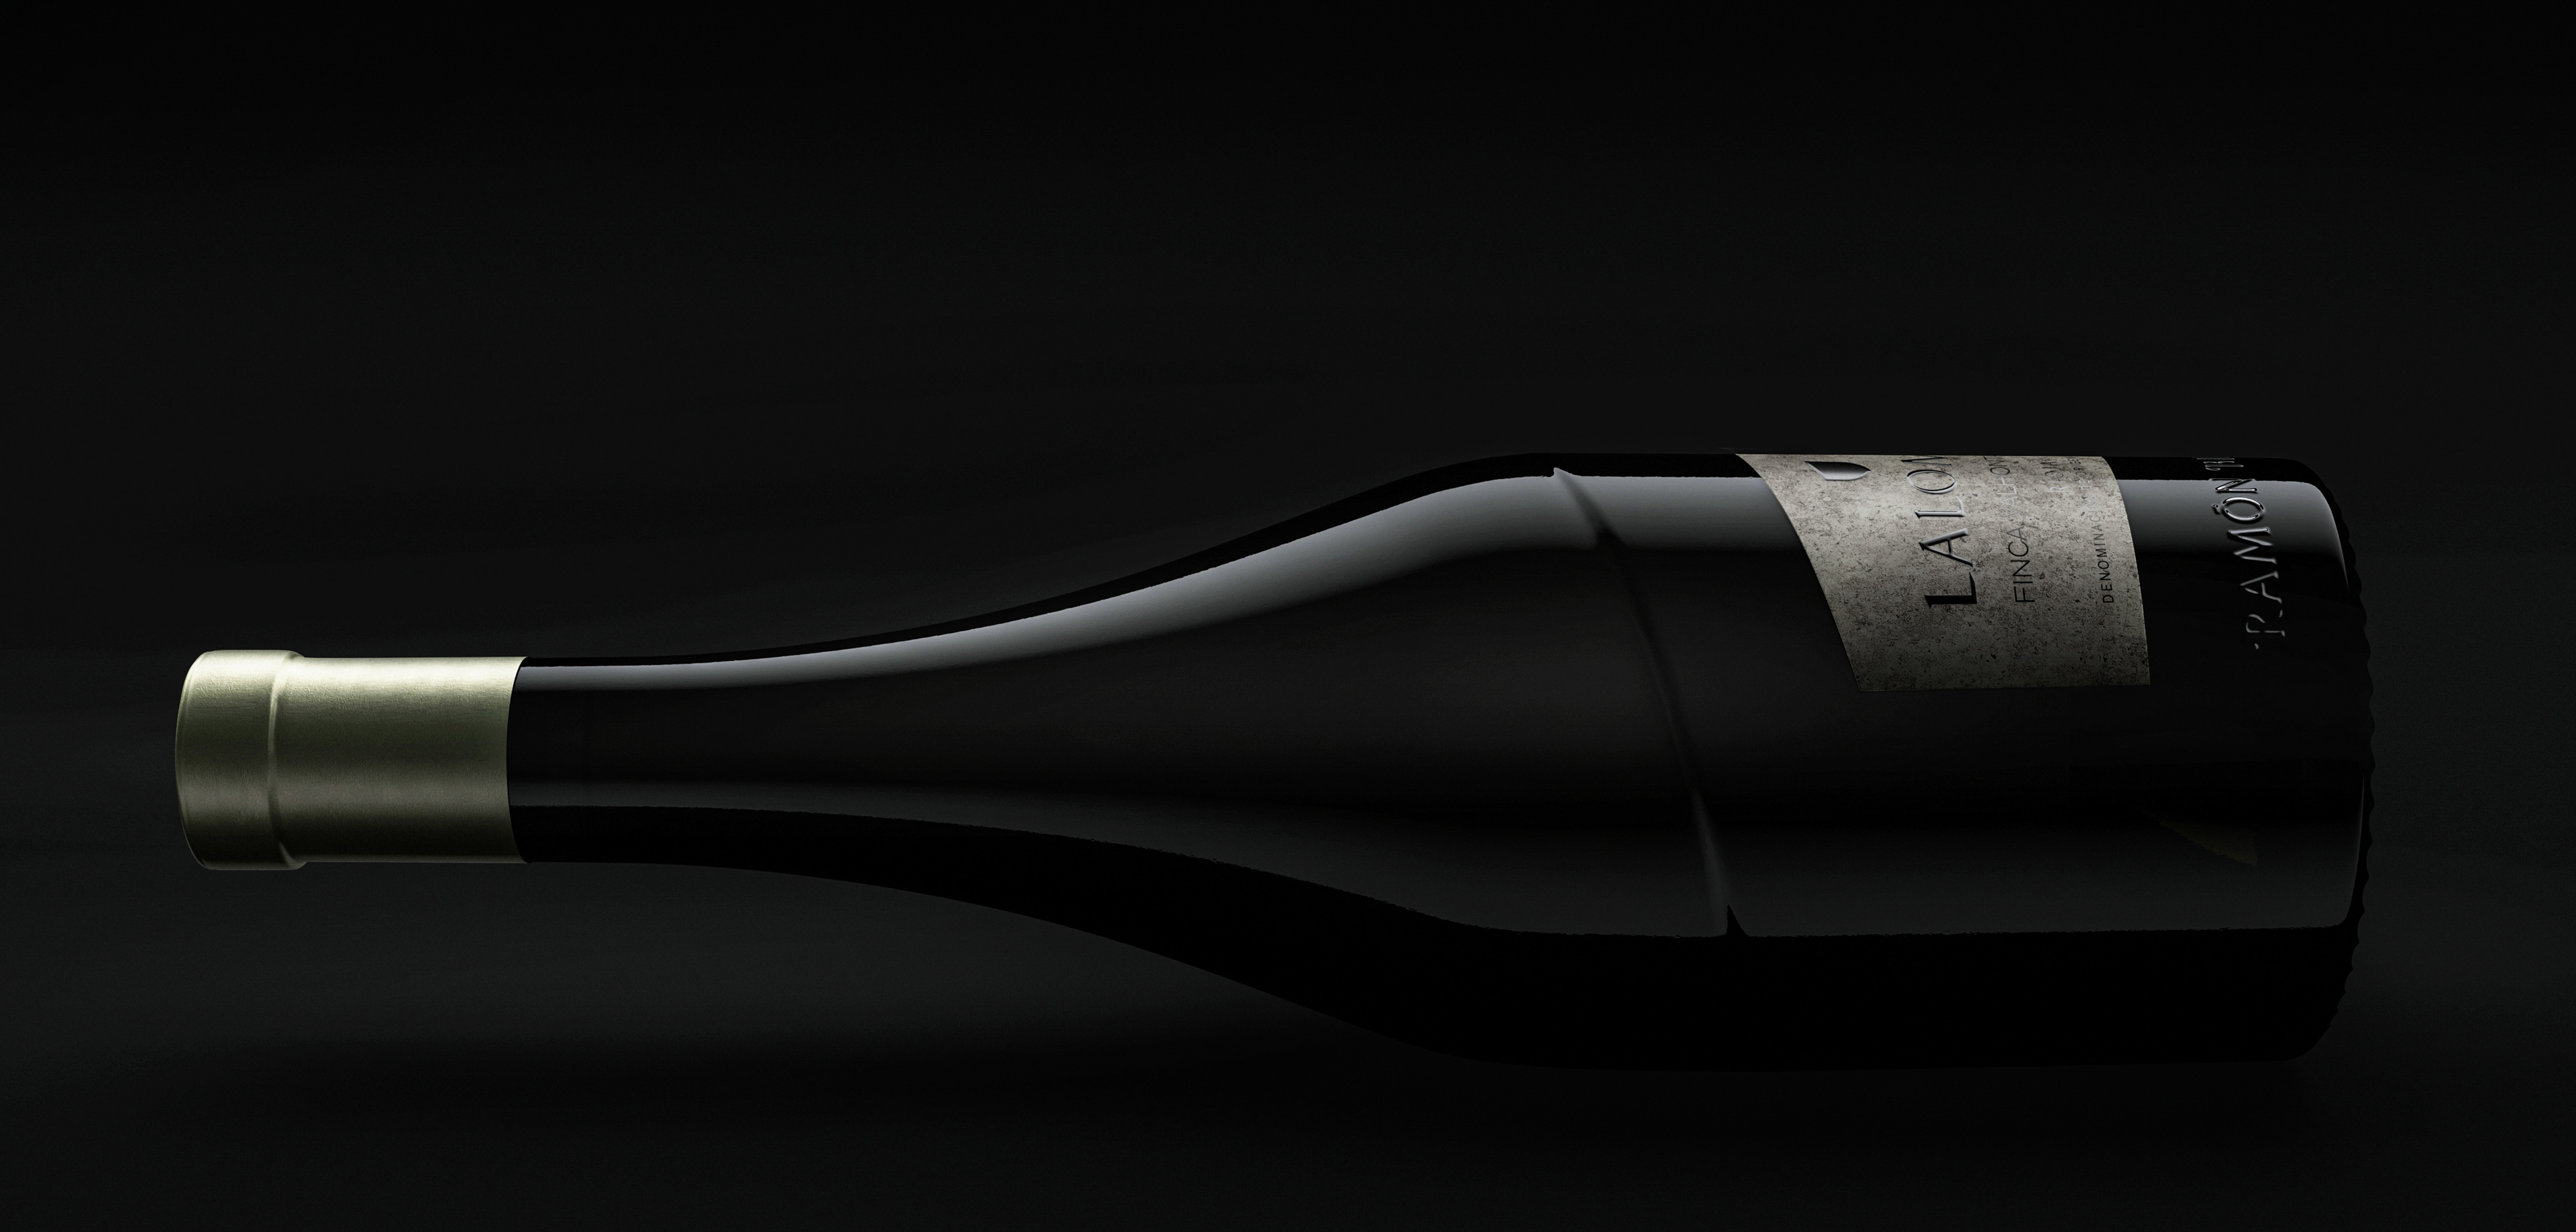 Appartement 103 Creates Premium Wine Lalomba From Spain